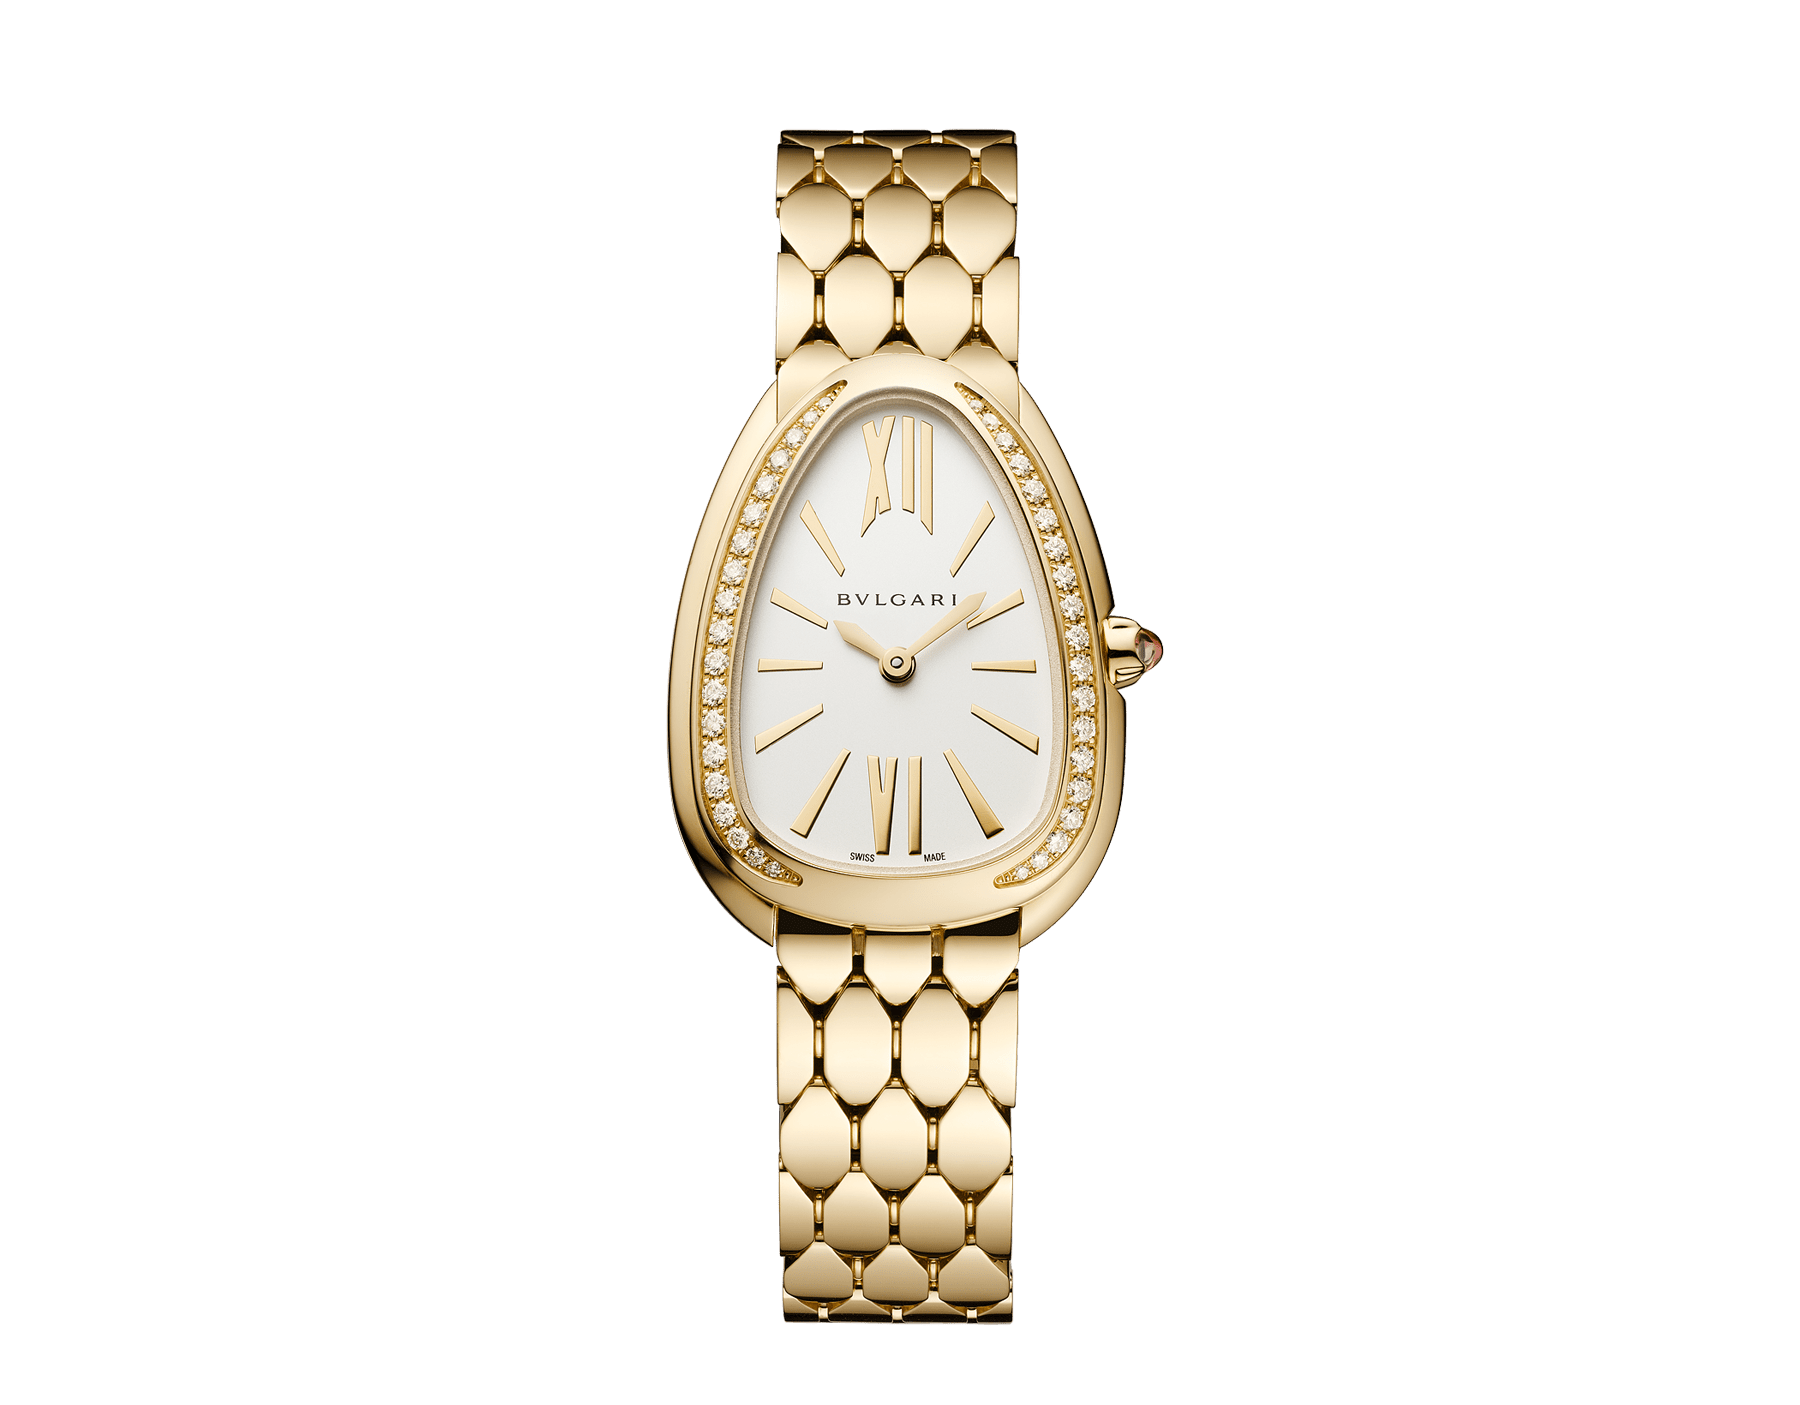 Serpenti Seduttori watch with 18 kt yellow gold case, 18 kt yellow gold bracelet, 18 kt yellow gold bezel set with diamonds and a white silver opaline dial. 103147 image 1